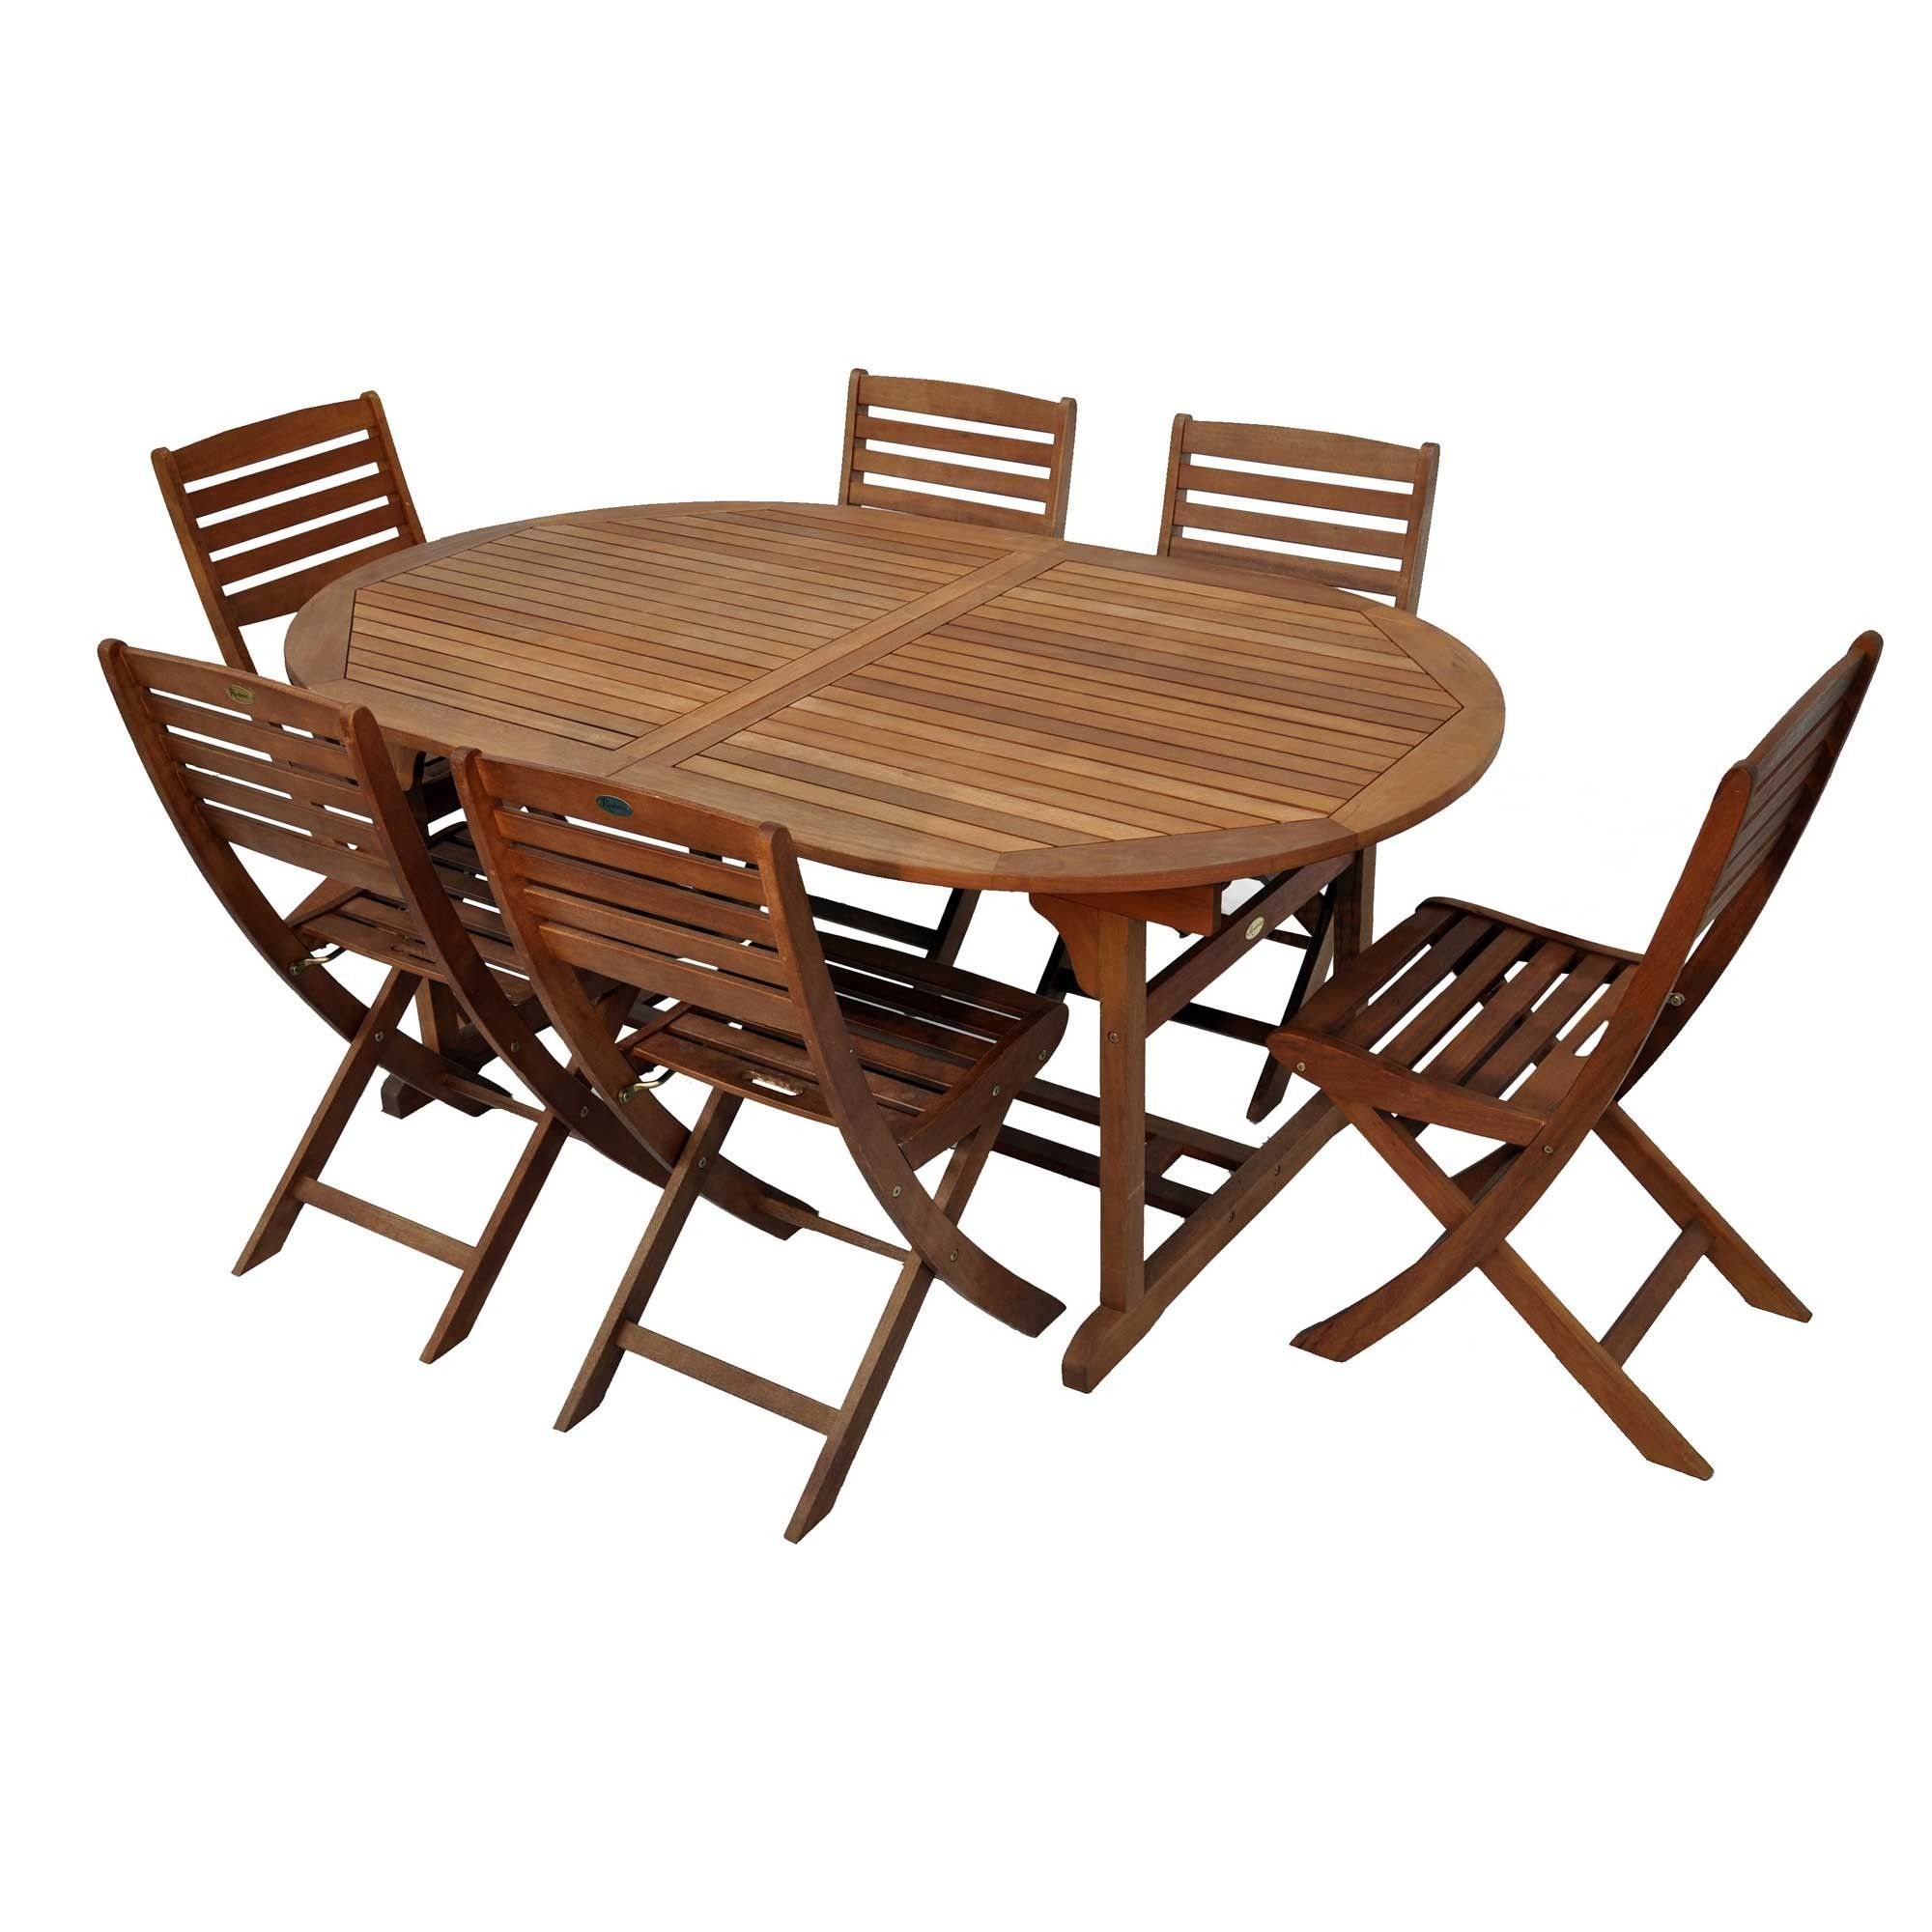 Chaise Jardin Carrefour Inspirant Stock Table Et Chaise ... avec Abri De Jardin En Bois Carrefour